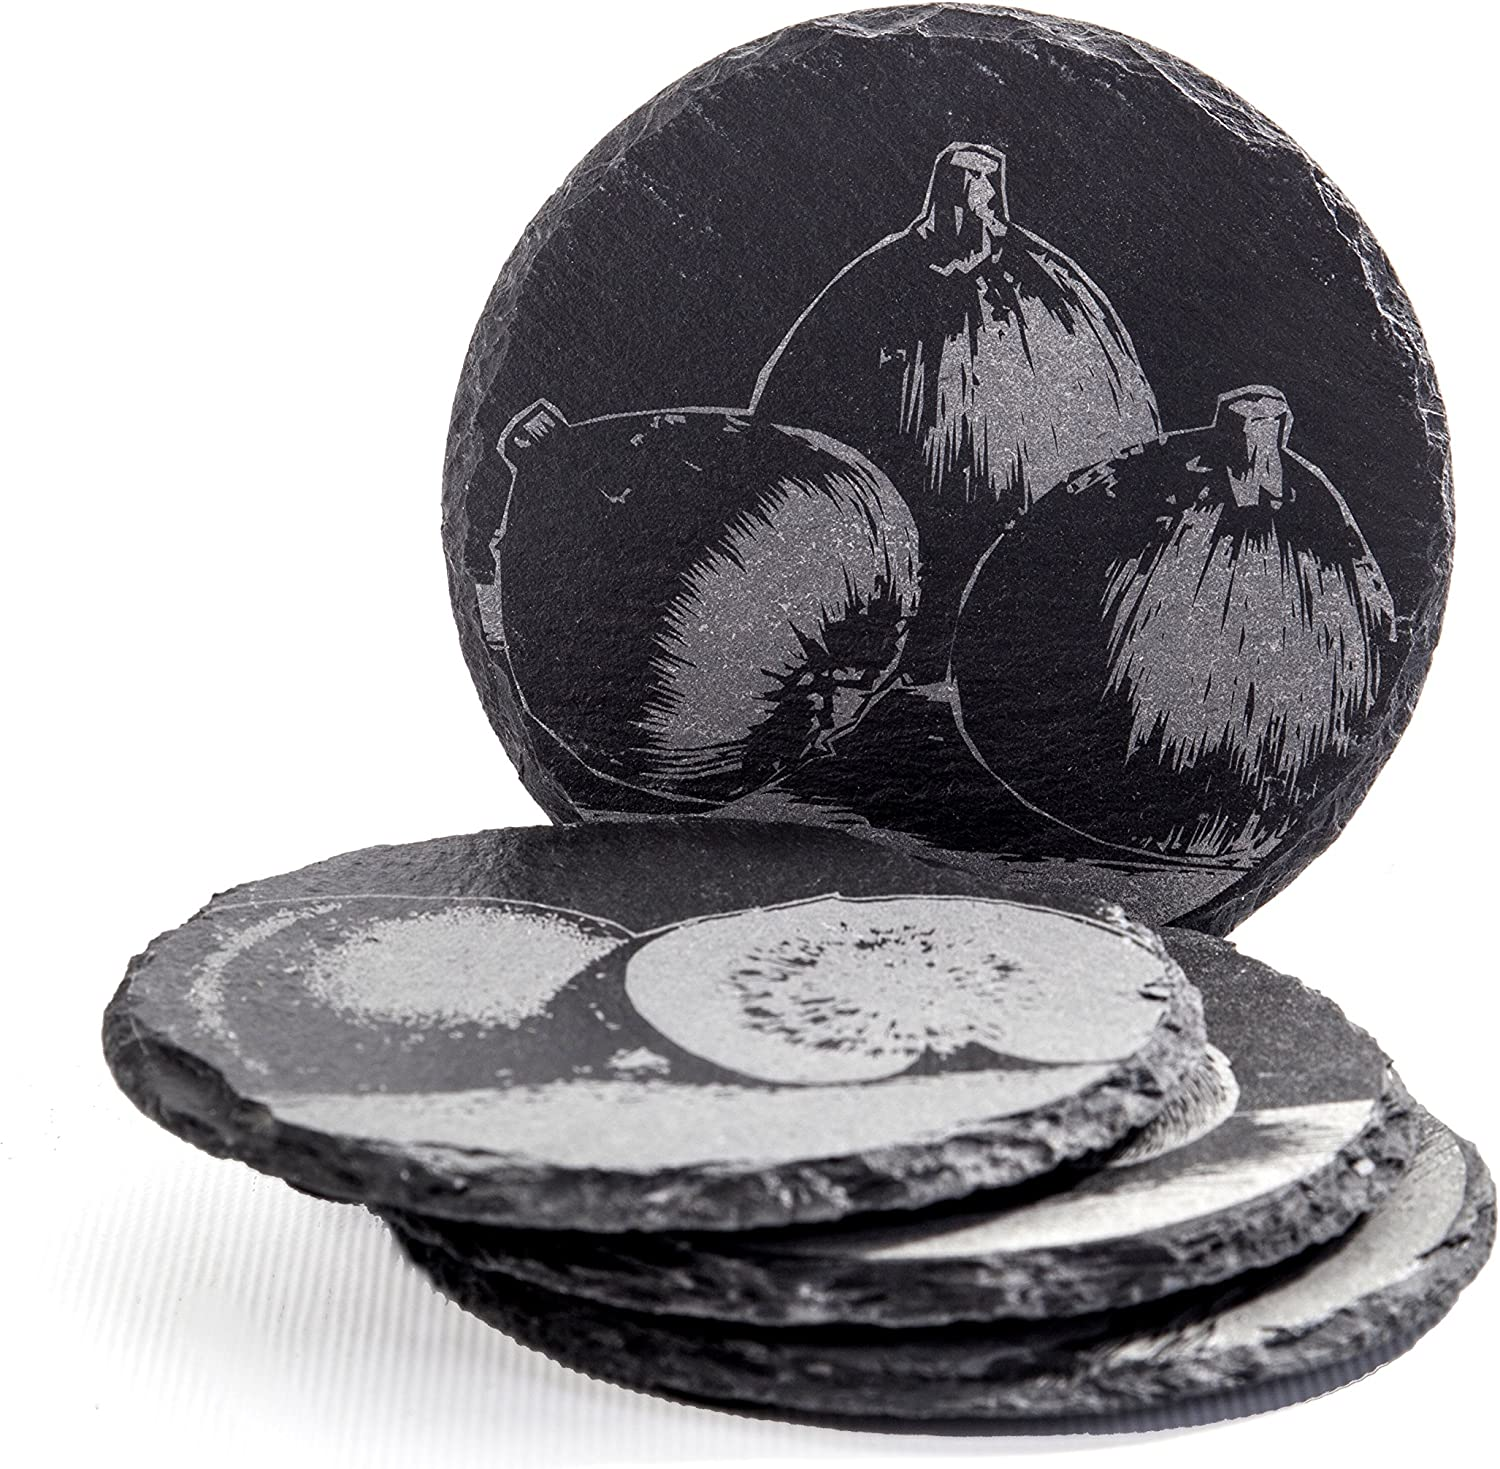 Bia Cordon Bleu Savoir Faire 4 Inch Round Slate Coasters Set Of 4 Assorted Designs Gift Boxed Coasters